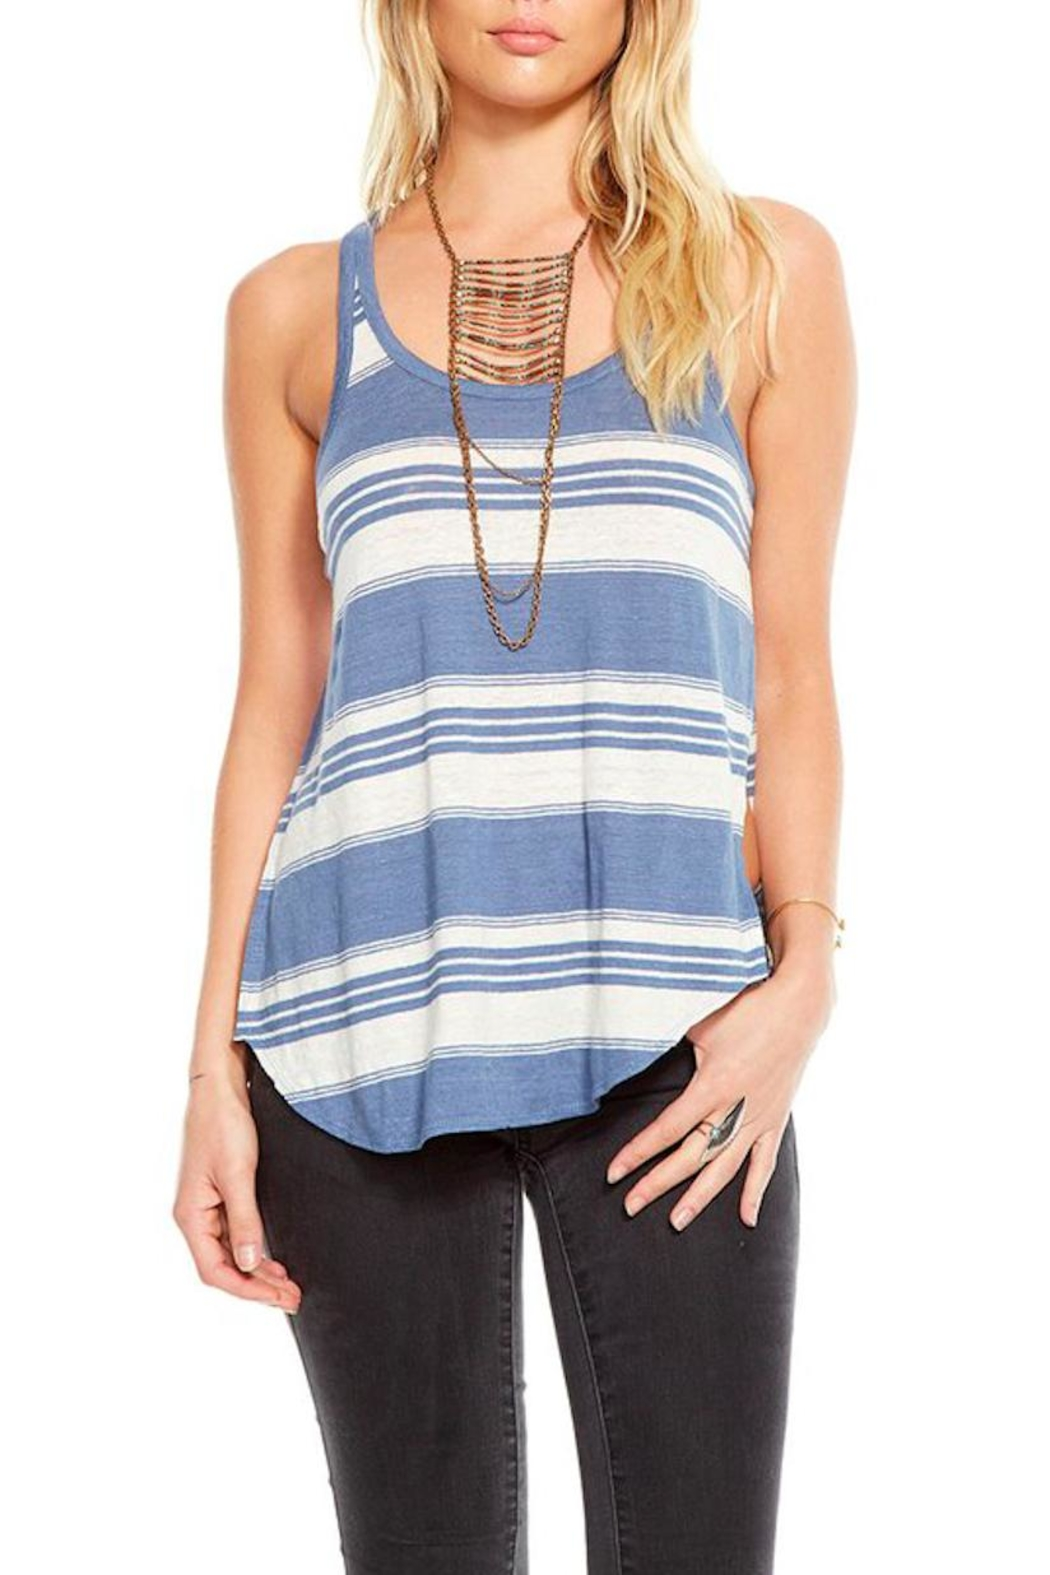 Chaser Striped Tank Top - Main Image